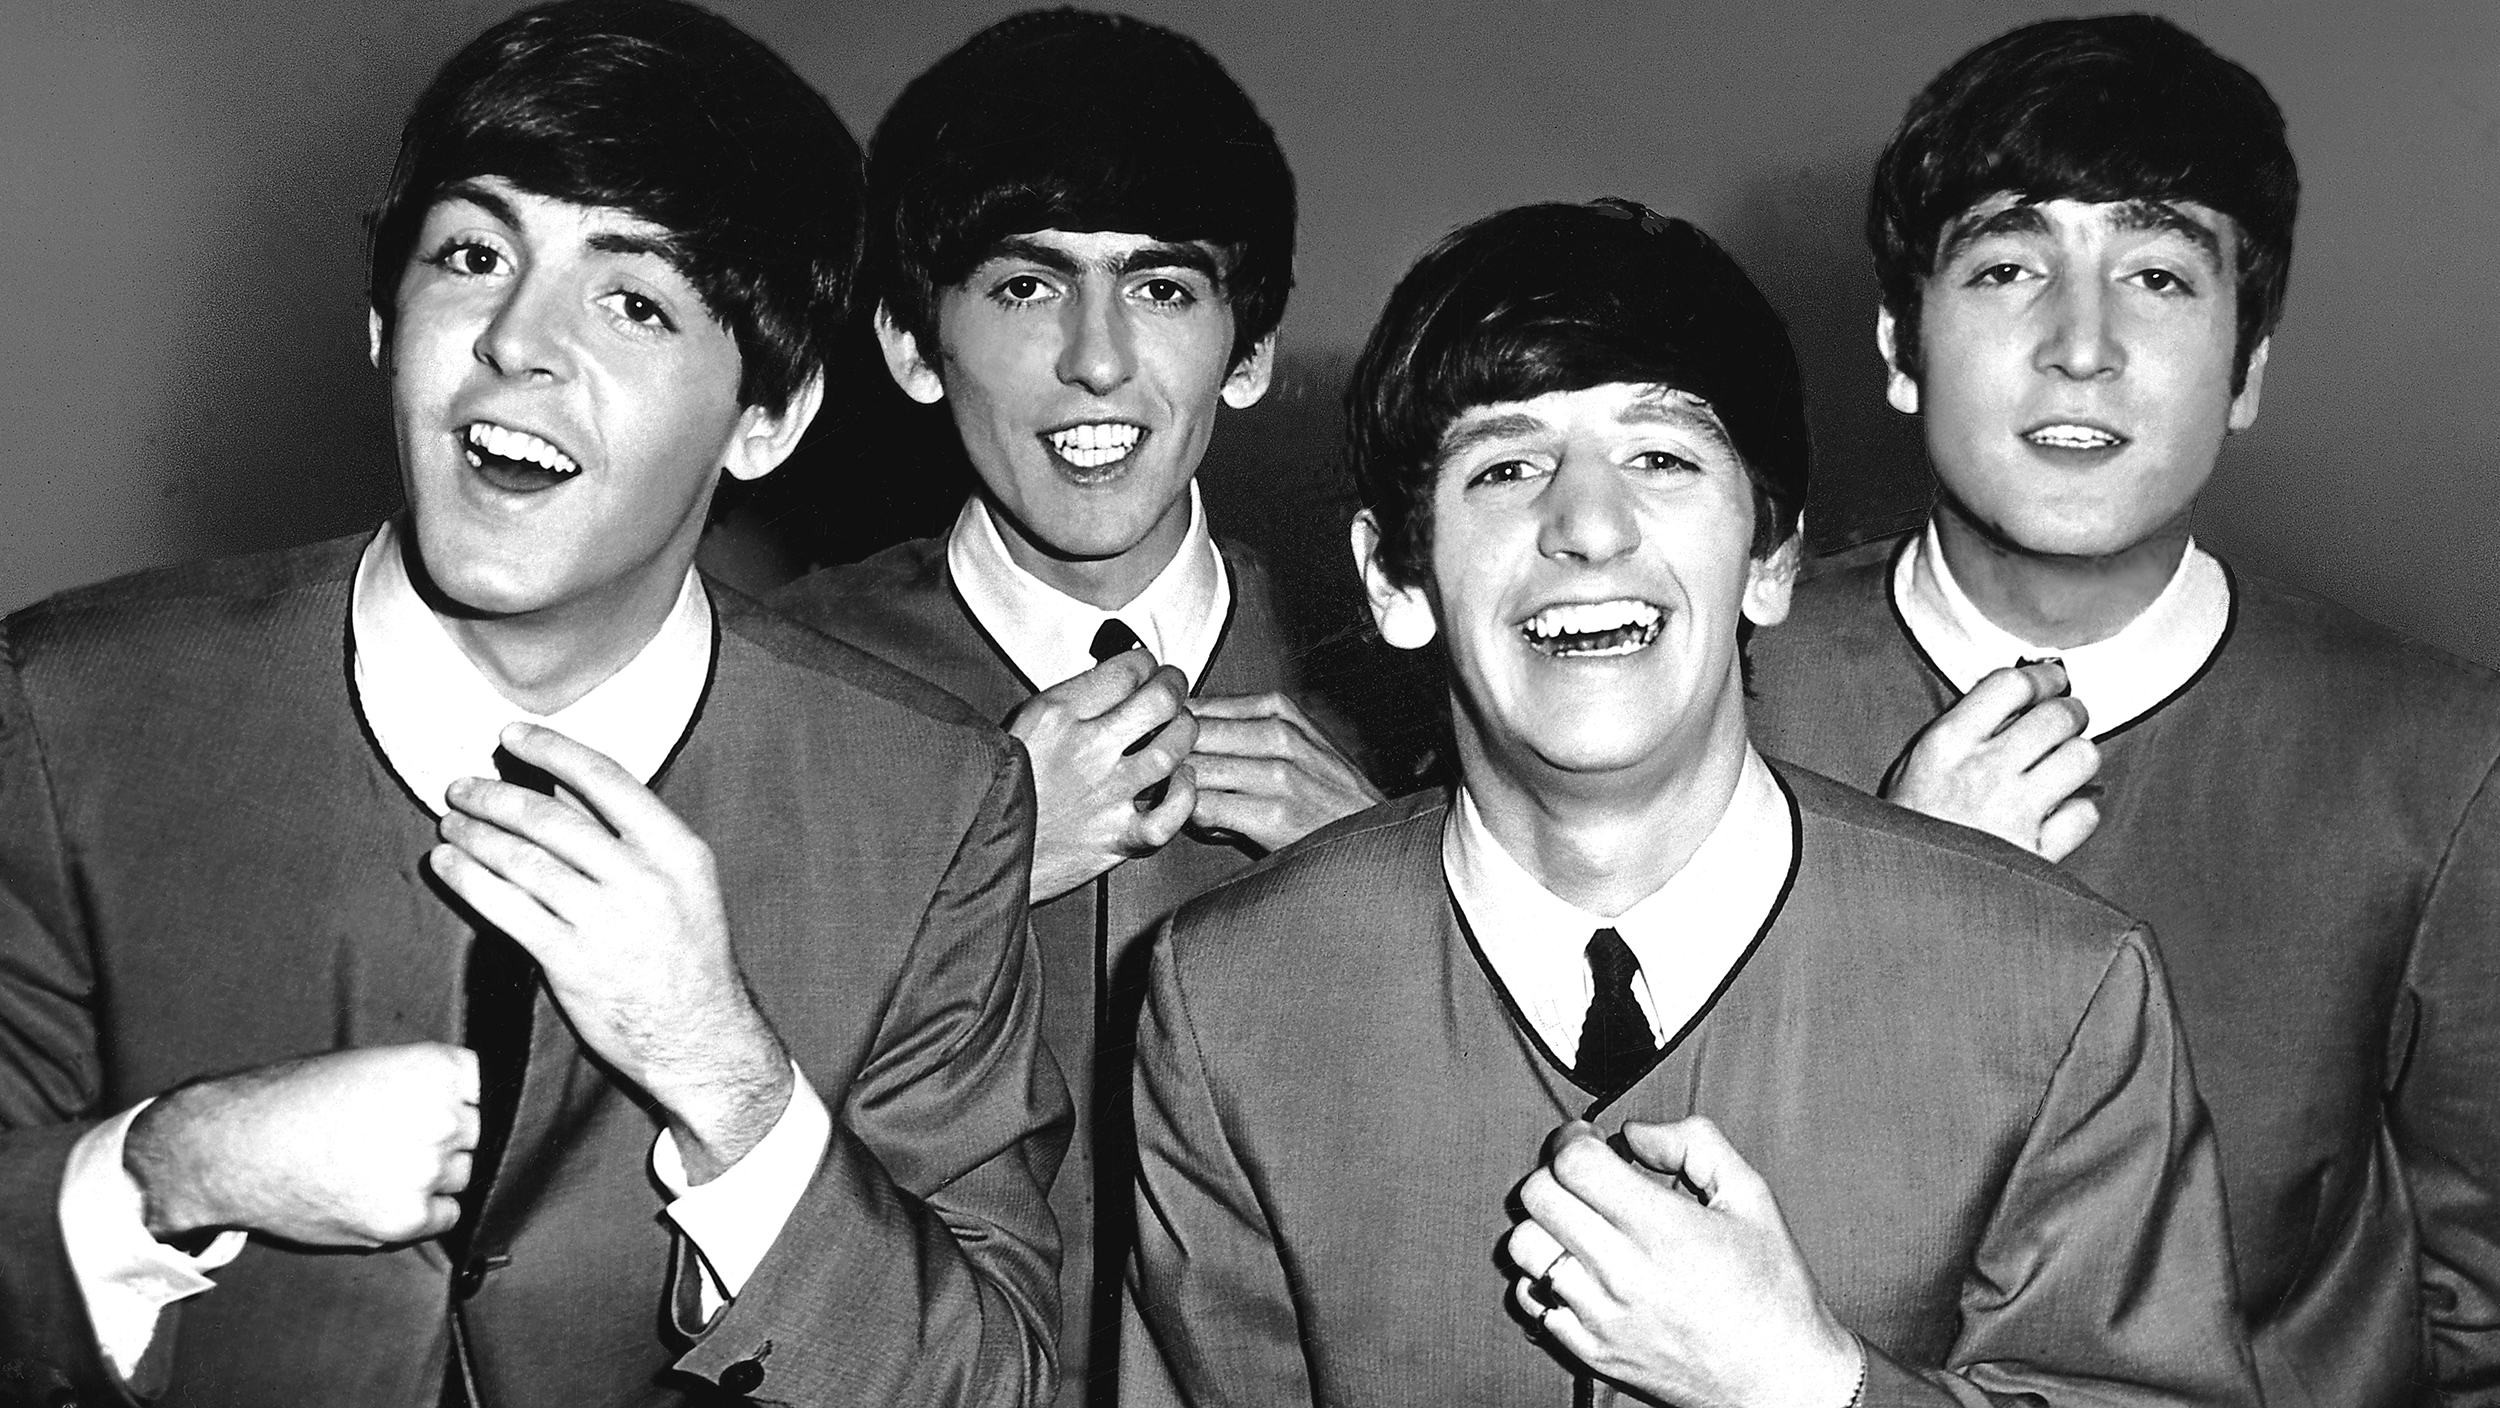 FILE - OCTOBER 5: 50 Years Since The First Beatles Single Released: A Look Back At The Beatles A group portrait of the Beatles, straightening their ties, backstage at the Odeon Cinema in Luton on 6th September 1963. (L-R) Paul McCartney, George Harrison, Ringo Starr, John Lennon. (Photo by Tom Hanley/Redferns)